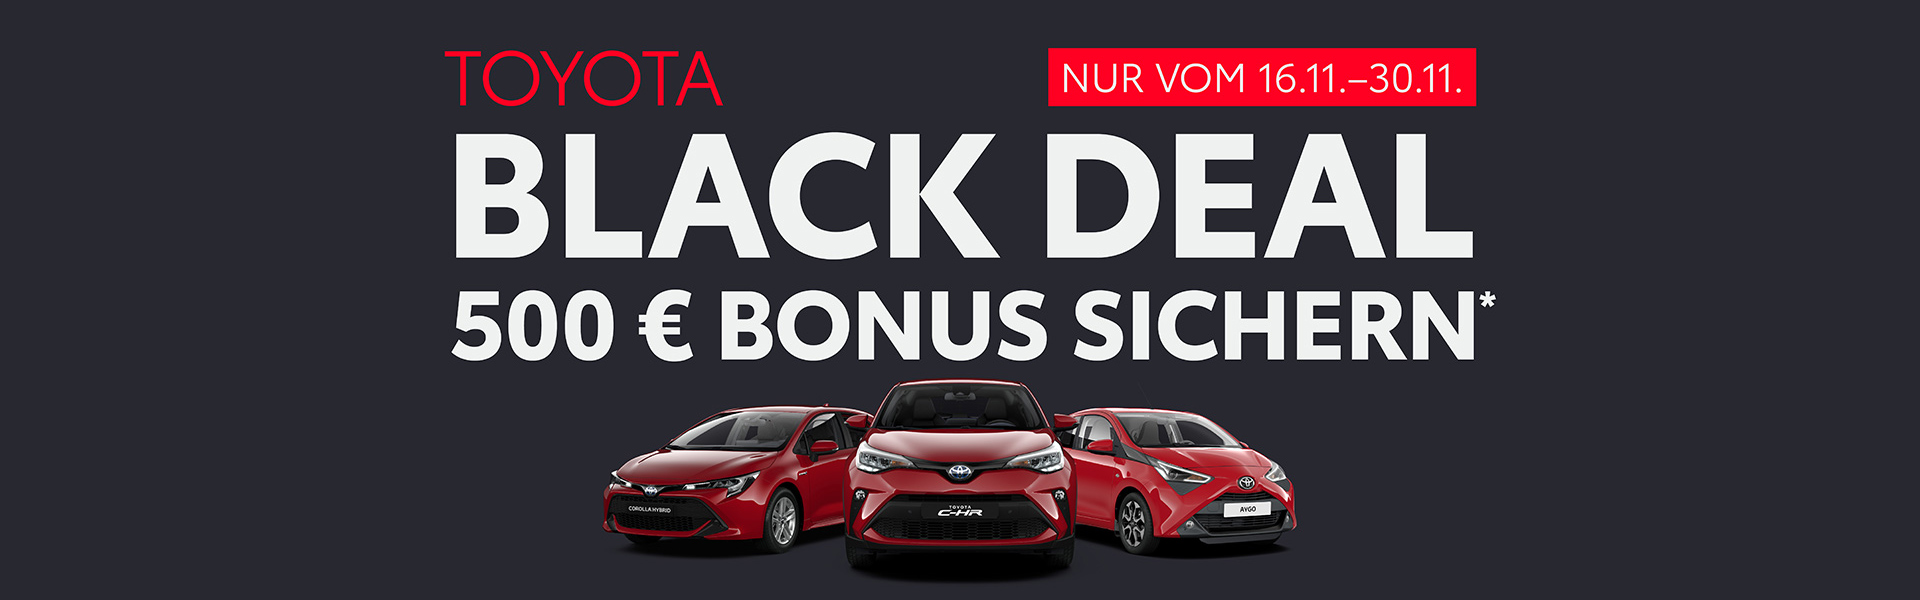 Toyota Black Deal